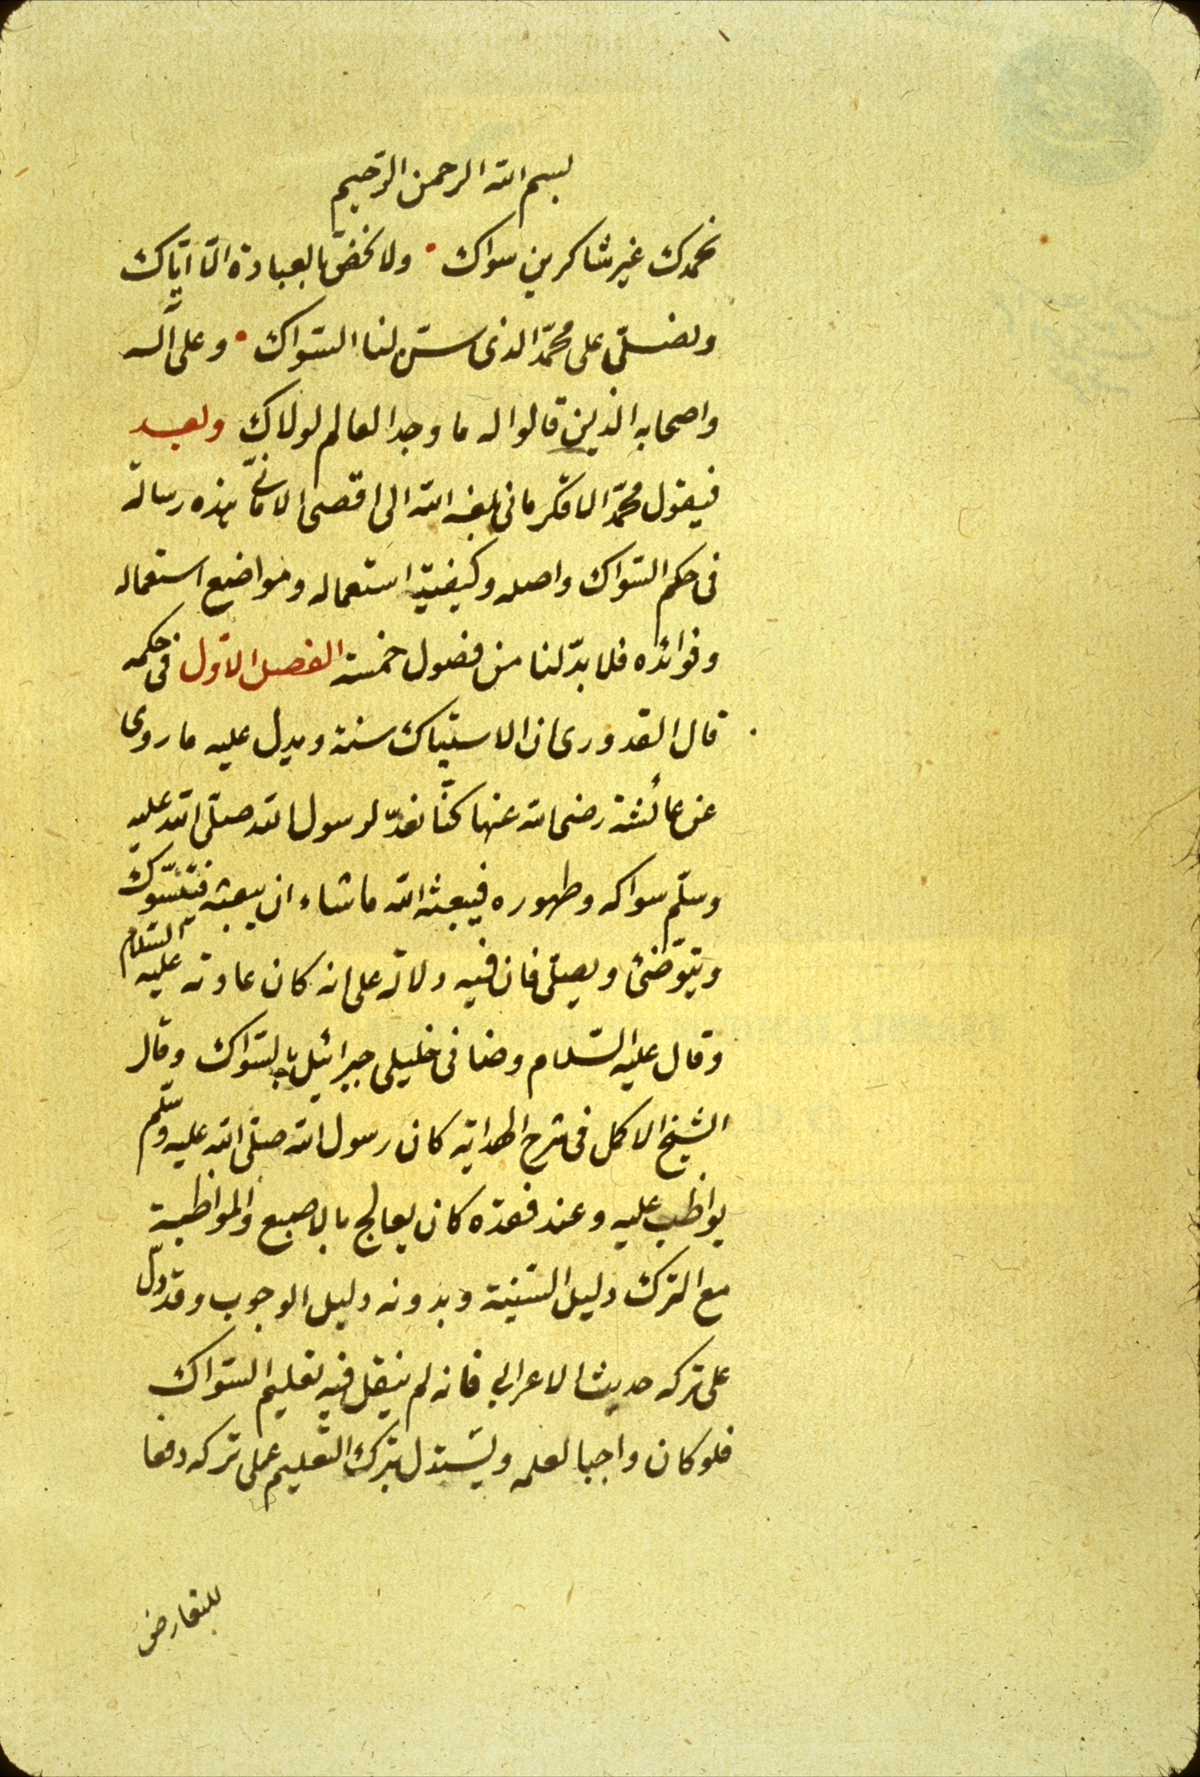 Dental Care in Islamic Medical Science: Muhammad al-Aqkirmani (d. 1760) and his Risalah fi hukm al-Siwak